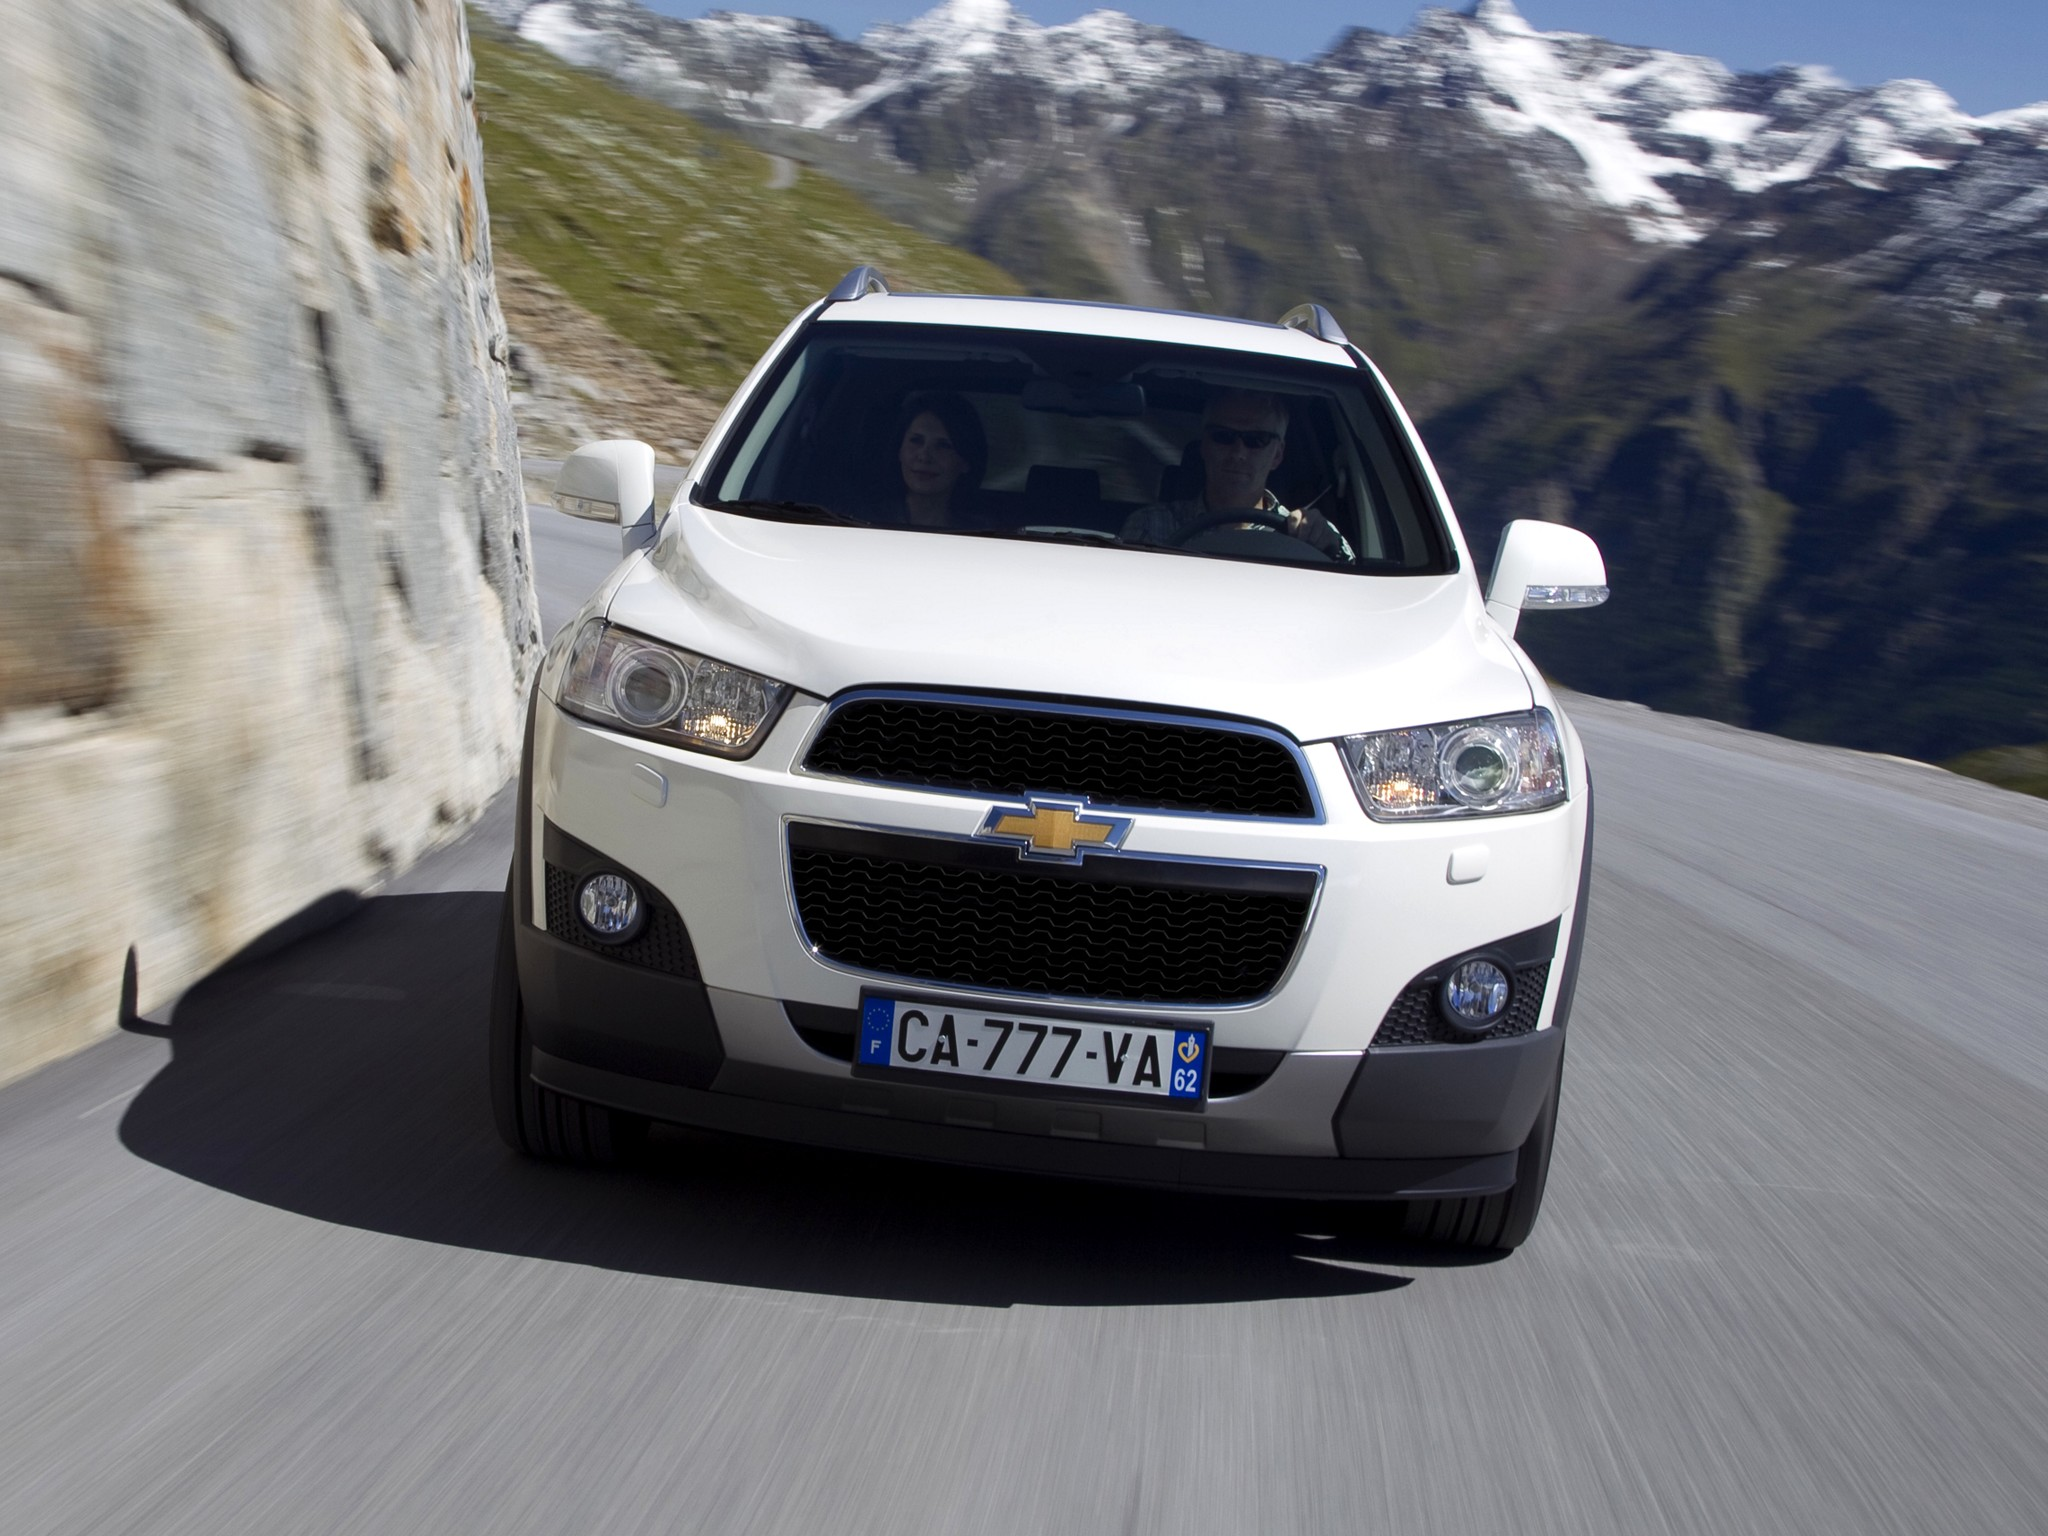 CHEVROLET Captiva Specs Amp Photos 2011 2012 2013 2014